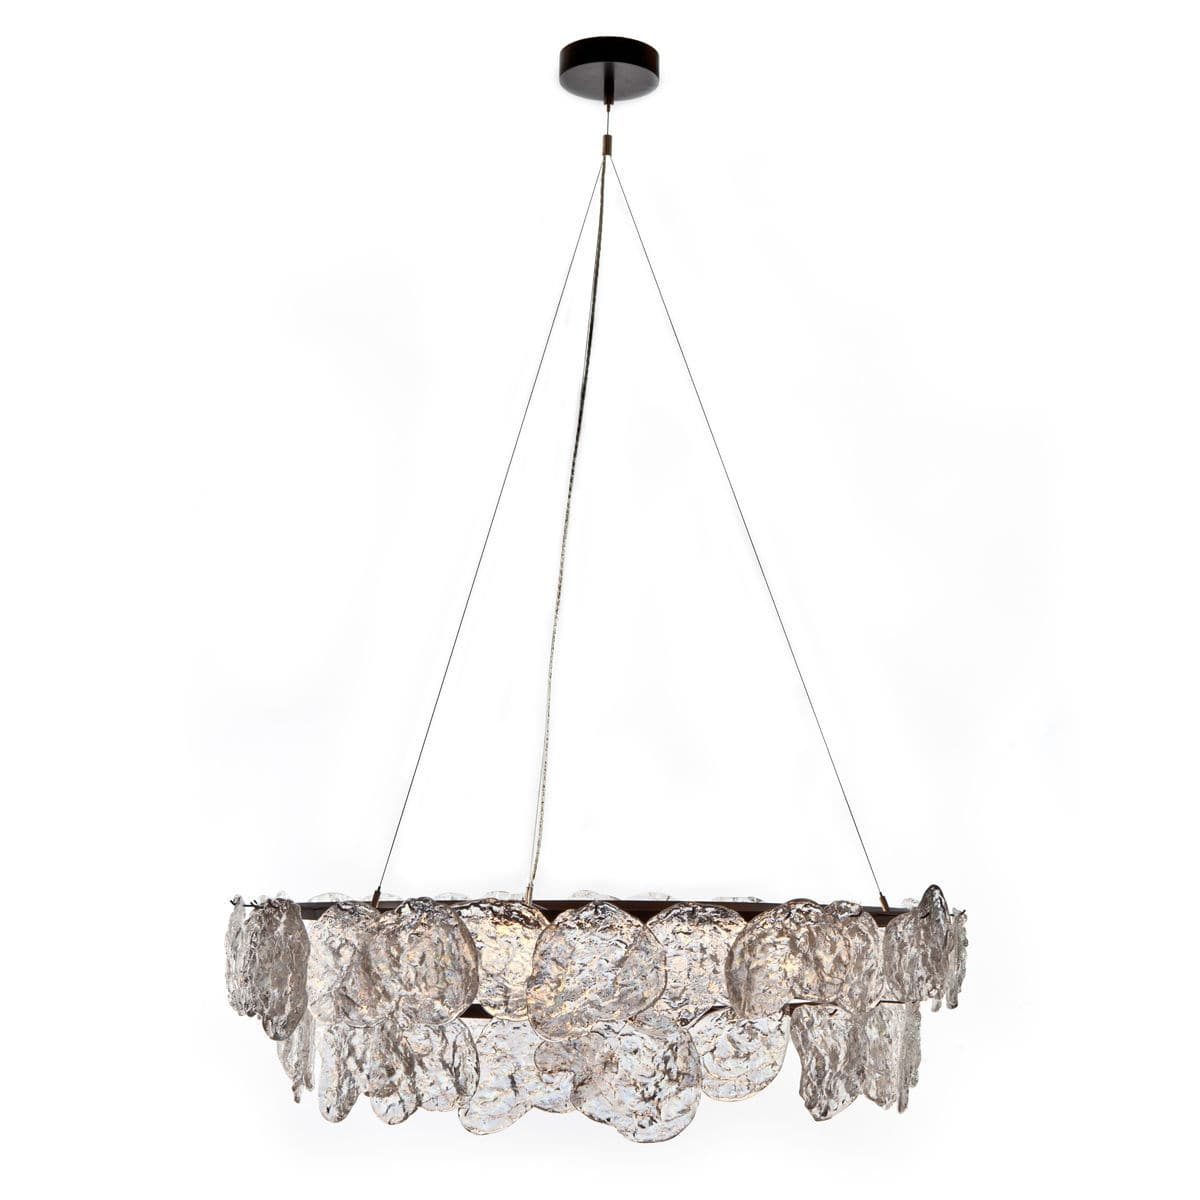 Contemporary chandelier metal glass incandescent rock edge contemporary chandelier metal glass incandescent arubaitofo Image collections